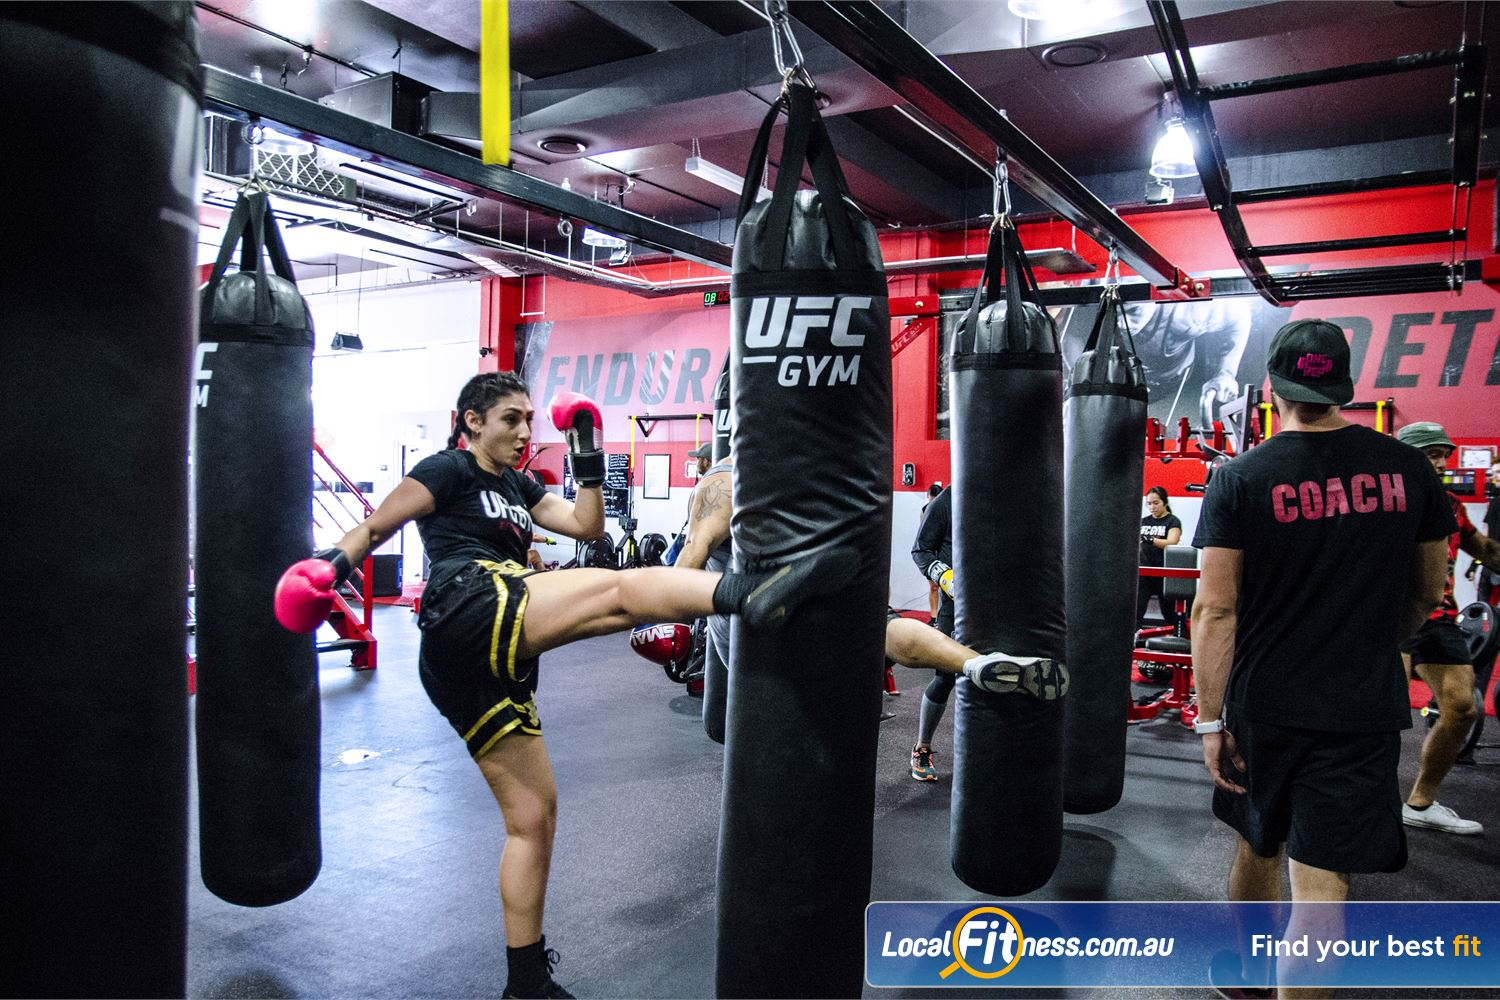 UFC Gym Blacktown Dedicated Blacktown boxing arena for our range of striking classes.